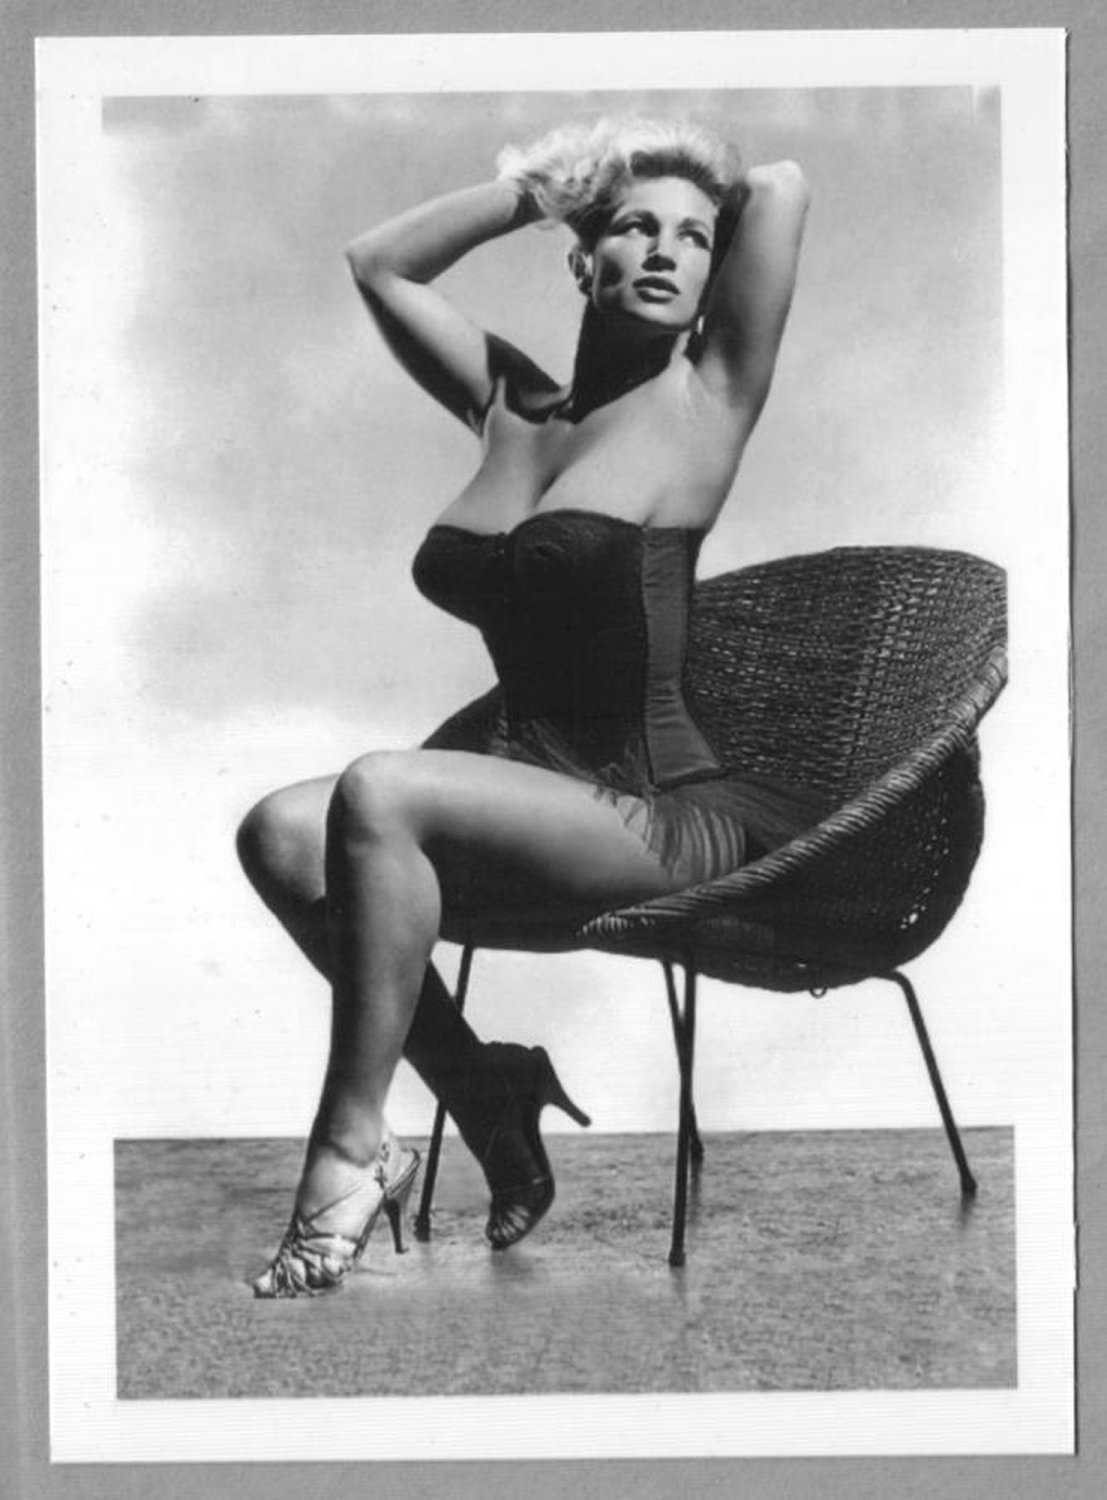 VIRGINIA BELL BUSTY BOSOMY BUSTIER POSE NEW REPRINT 5 X 7 #59